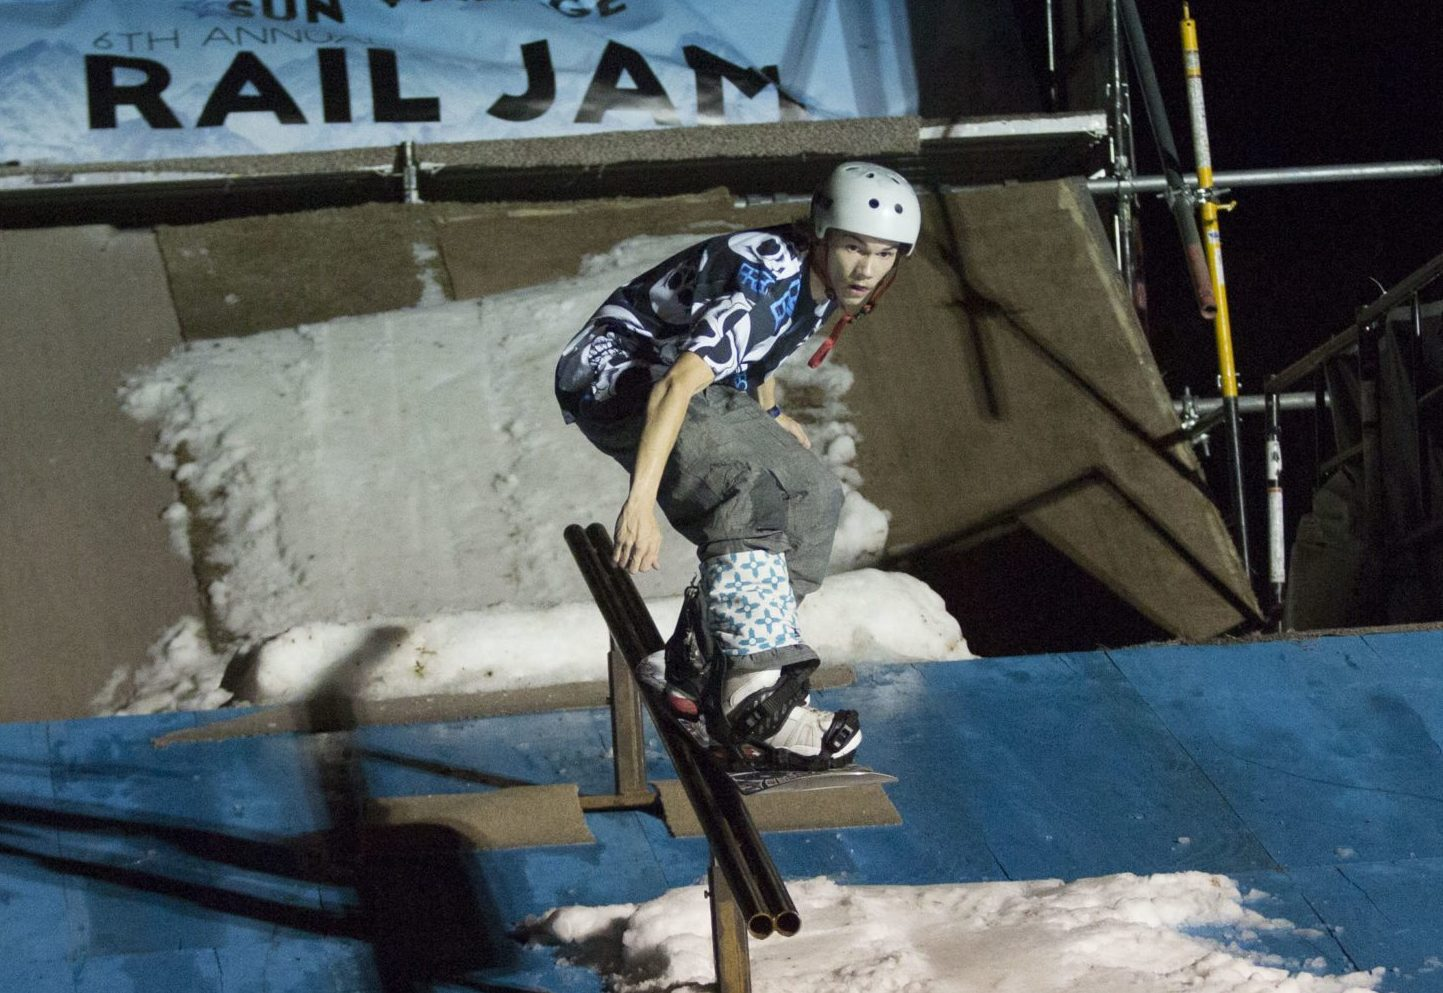 Snowboarder on a rail